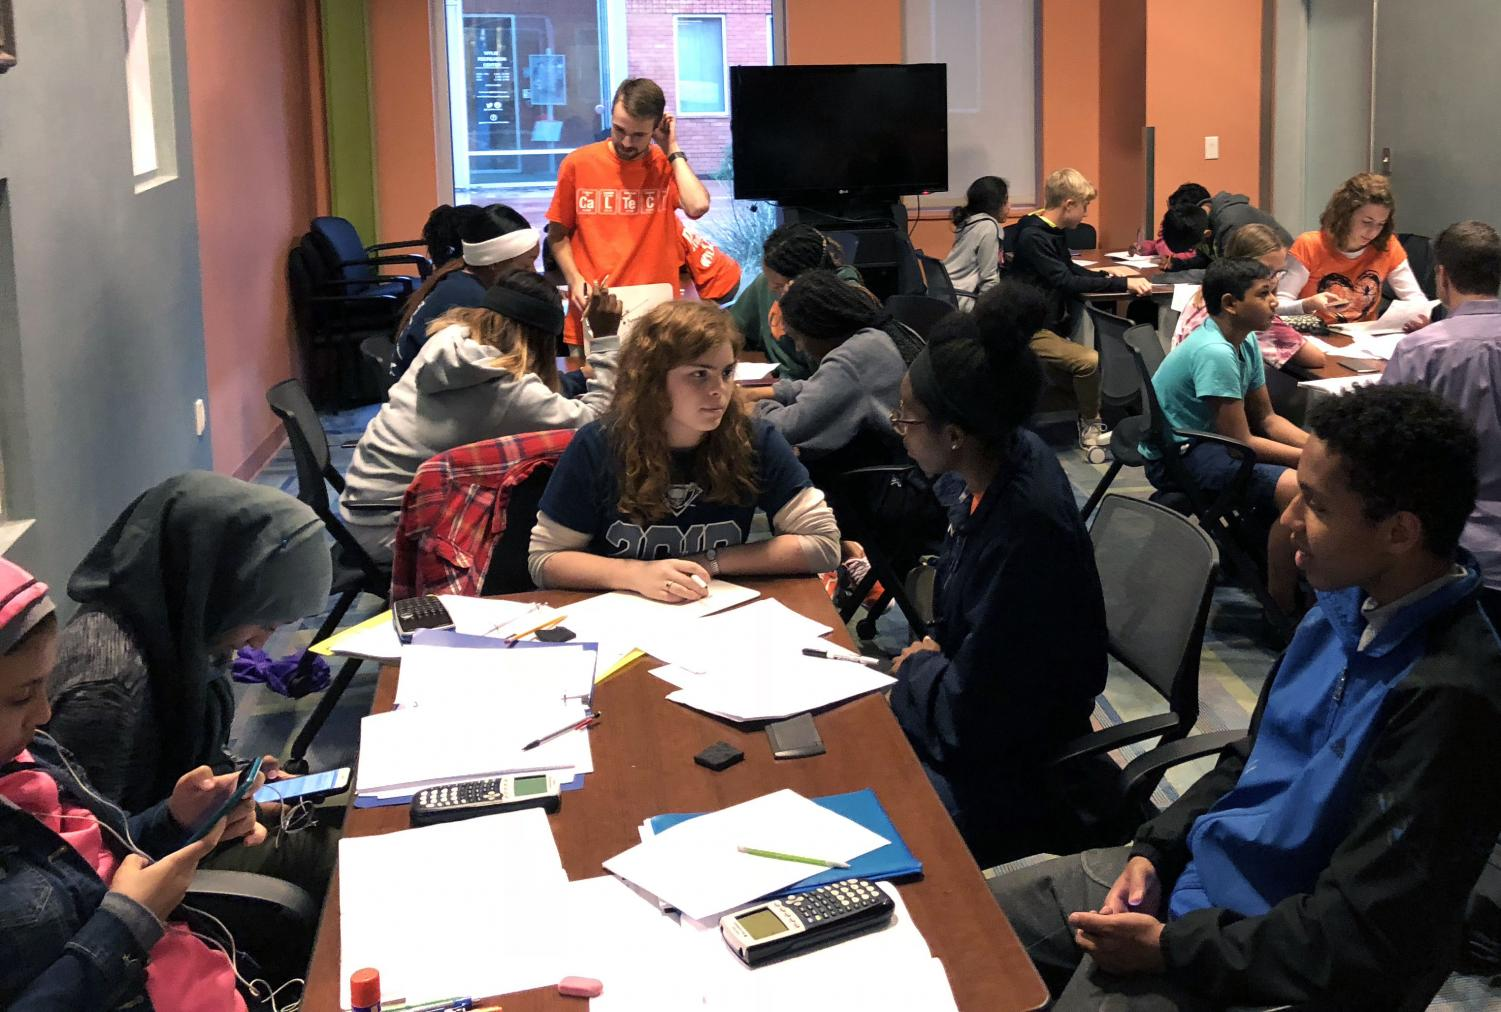 Free for all \ After seeing a need for math tutoring, senior Jaxson Hill started a free tutoring program. Housed at the Smith Public Library on Wednesday evenings, the tutoring is conducted by eighth grade through seniors and open for students in third grade to high school.